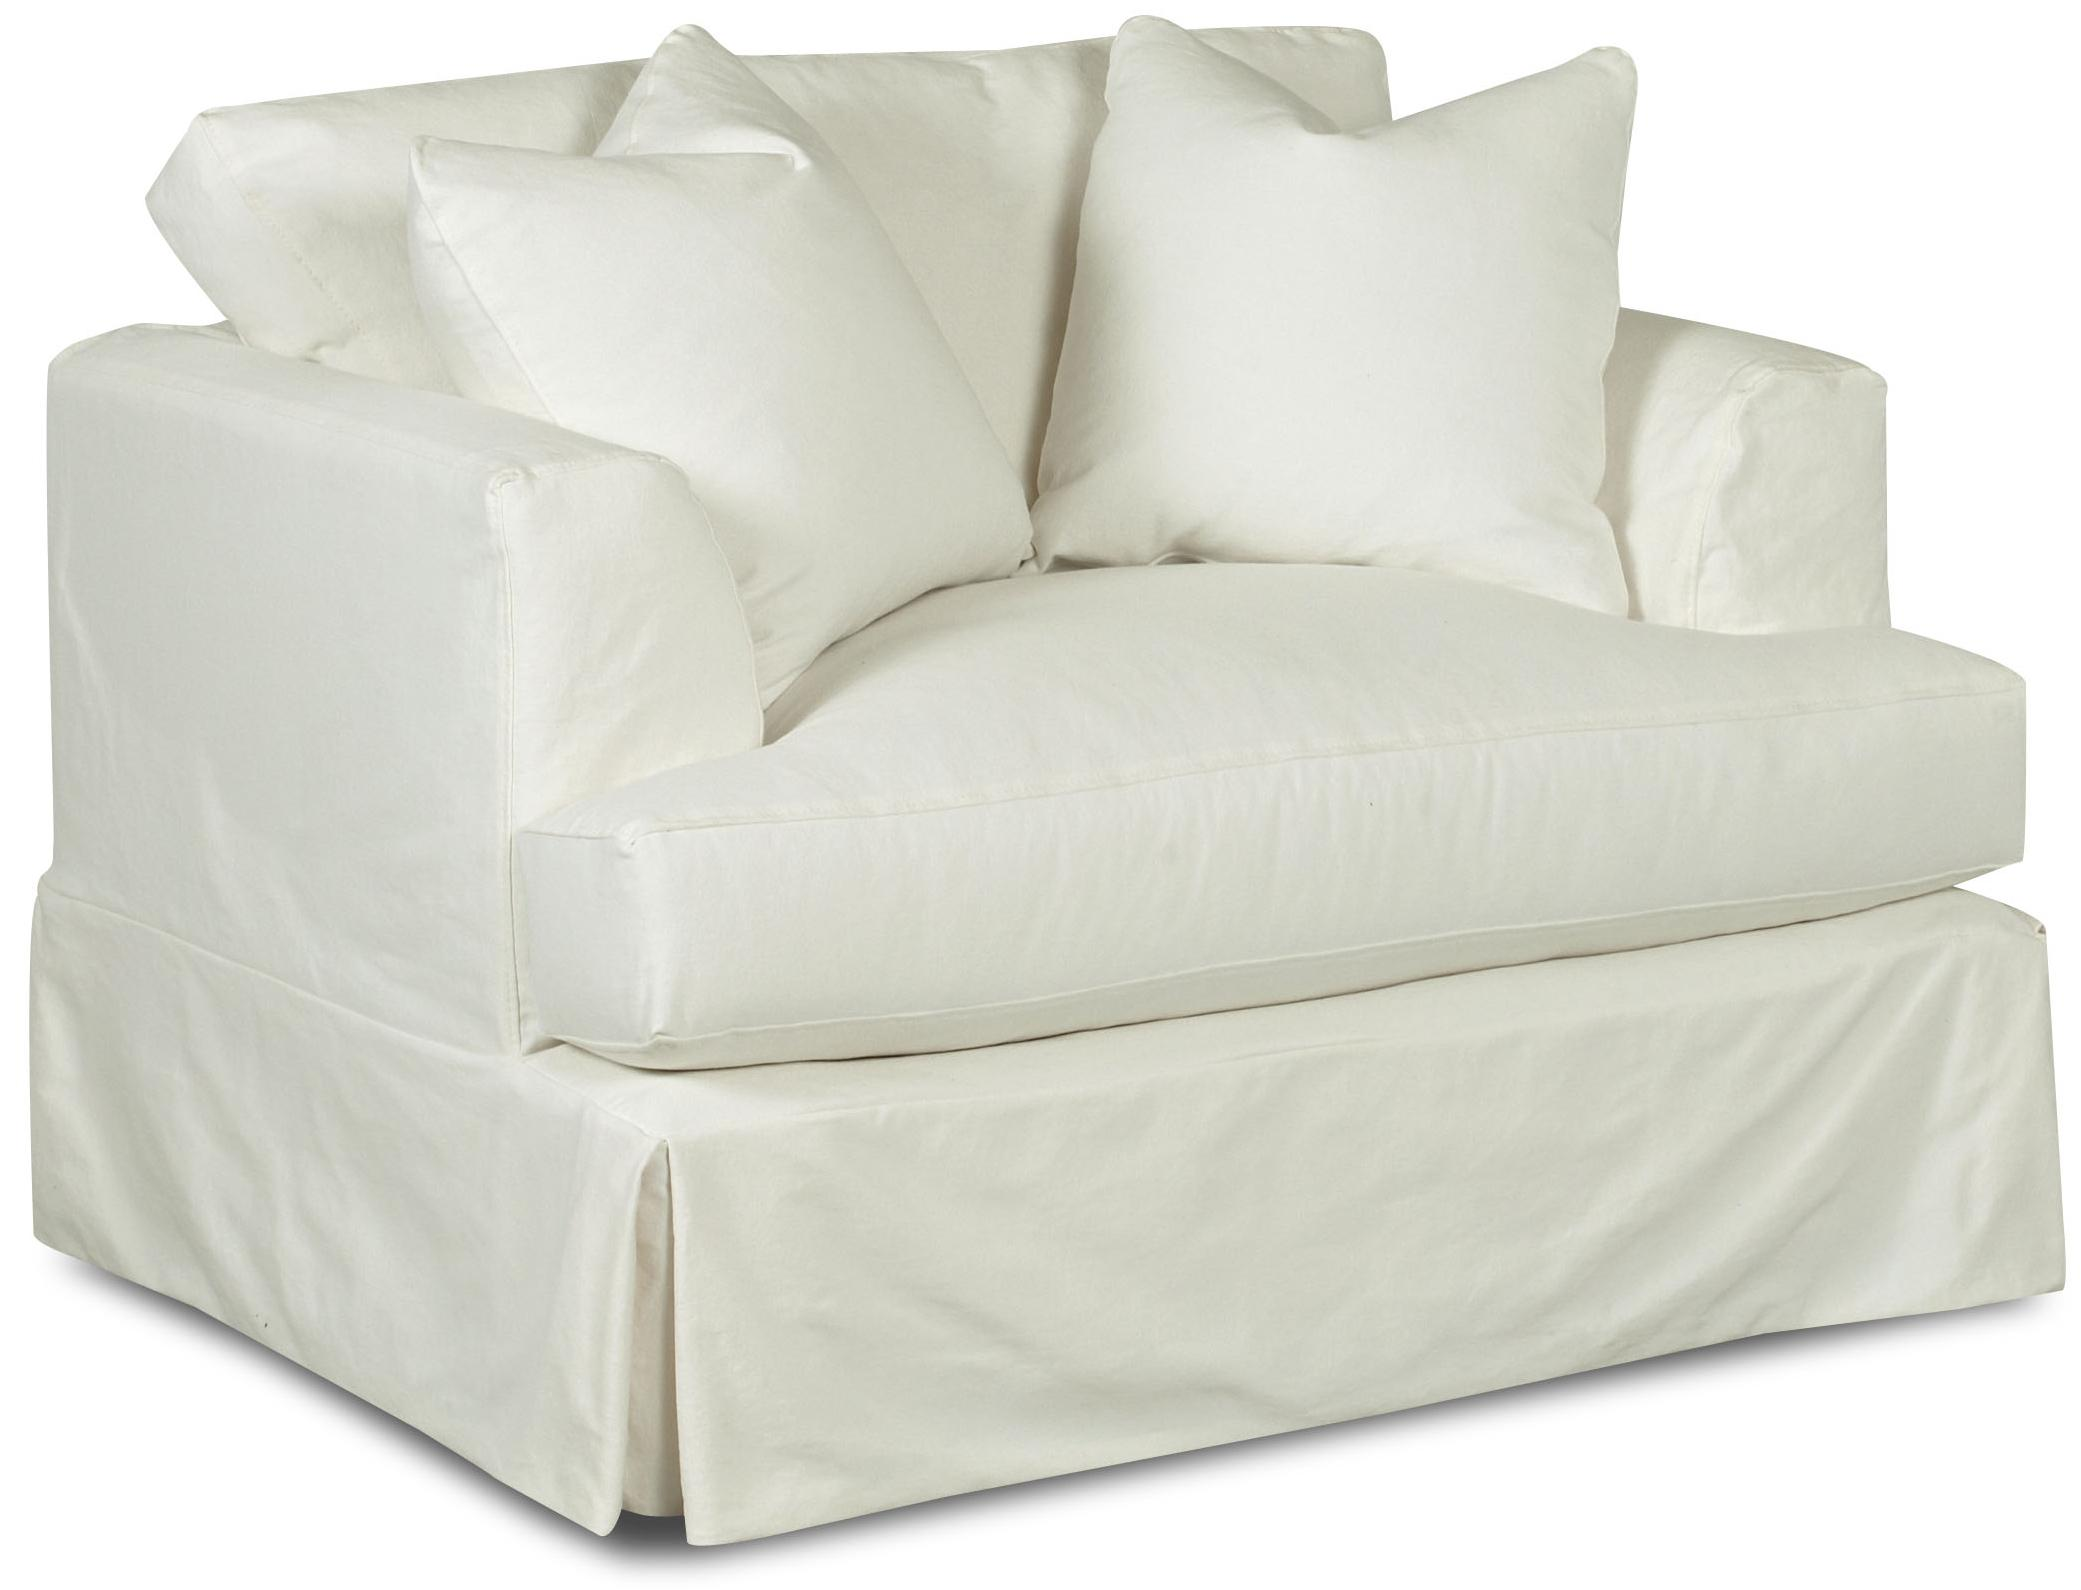 Bed Bath Beyond Sofa Covers | Sectional Slipcovers | Oversized Chair Slipcover